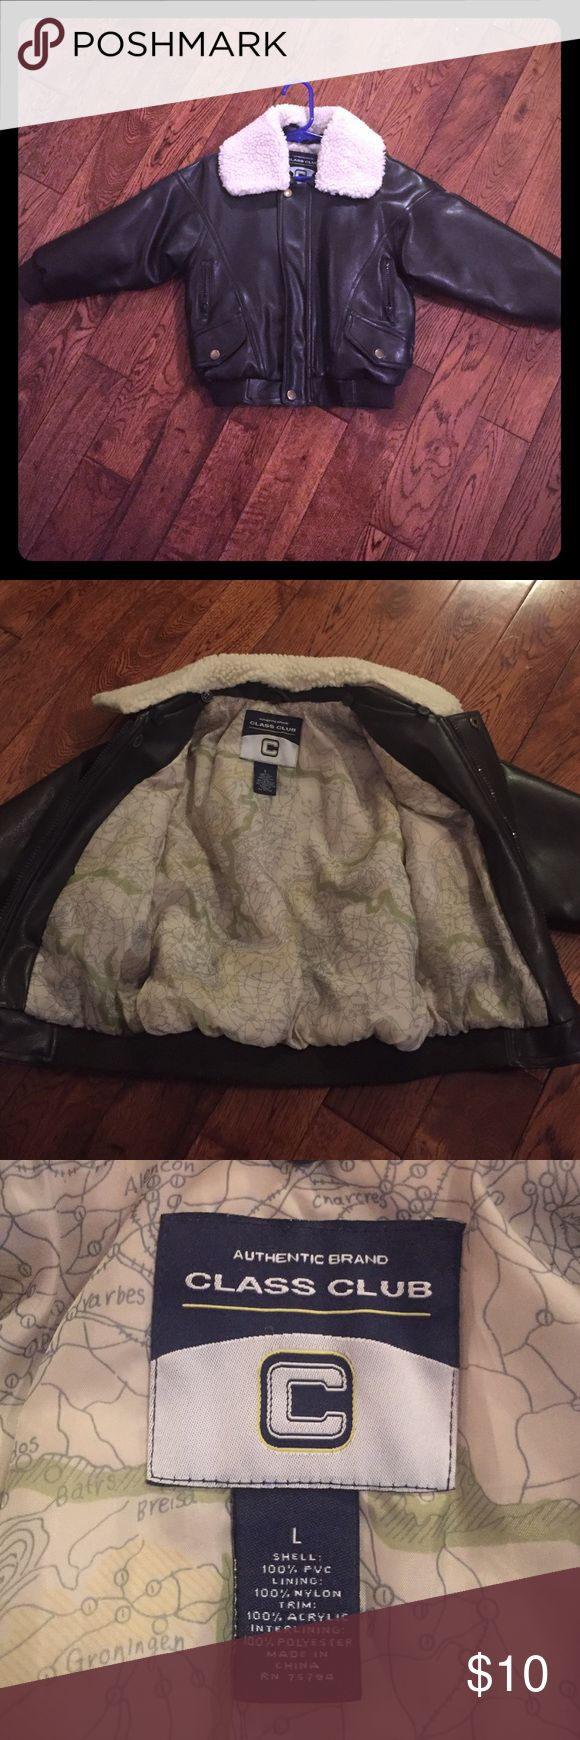 Aviator jacket This is the cutest coat!  Removable color.  Perfect condition with no stains or rips.  Tag says size large but I would say it is suitable for kids wearing a size 5-7. Jackets & Coats Puffers